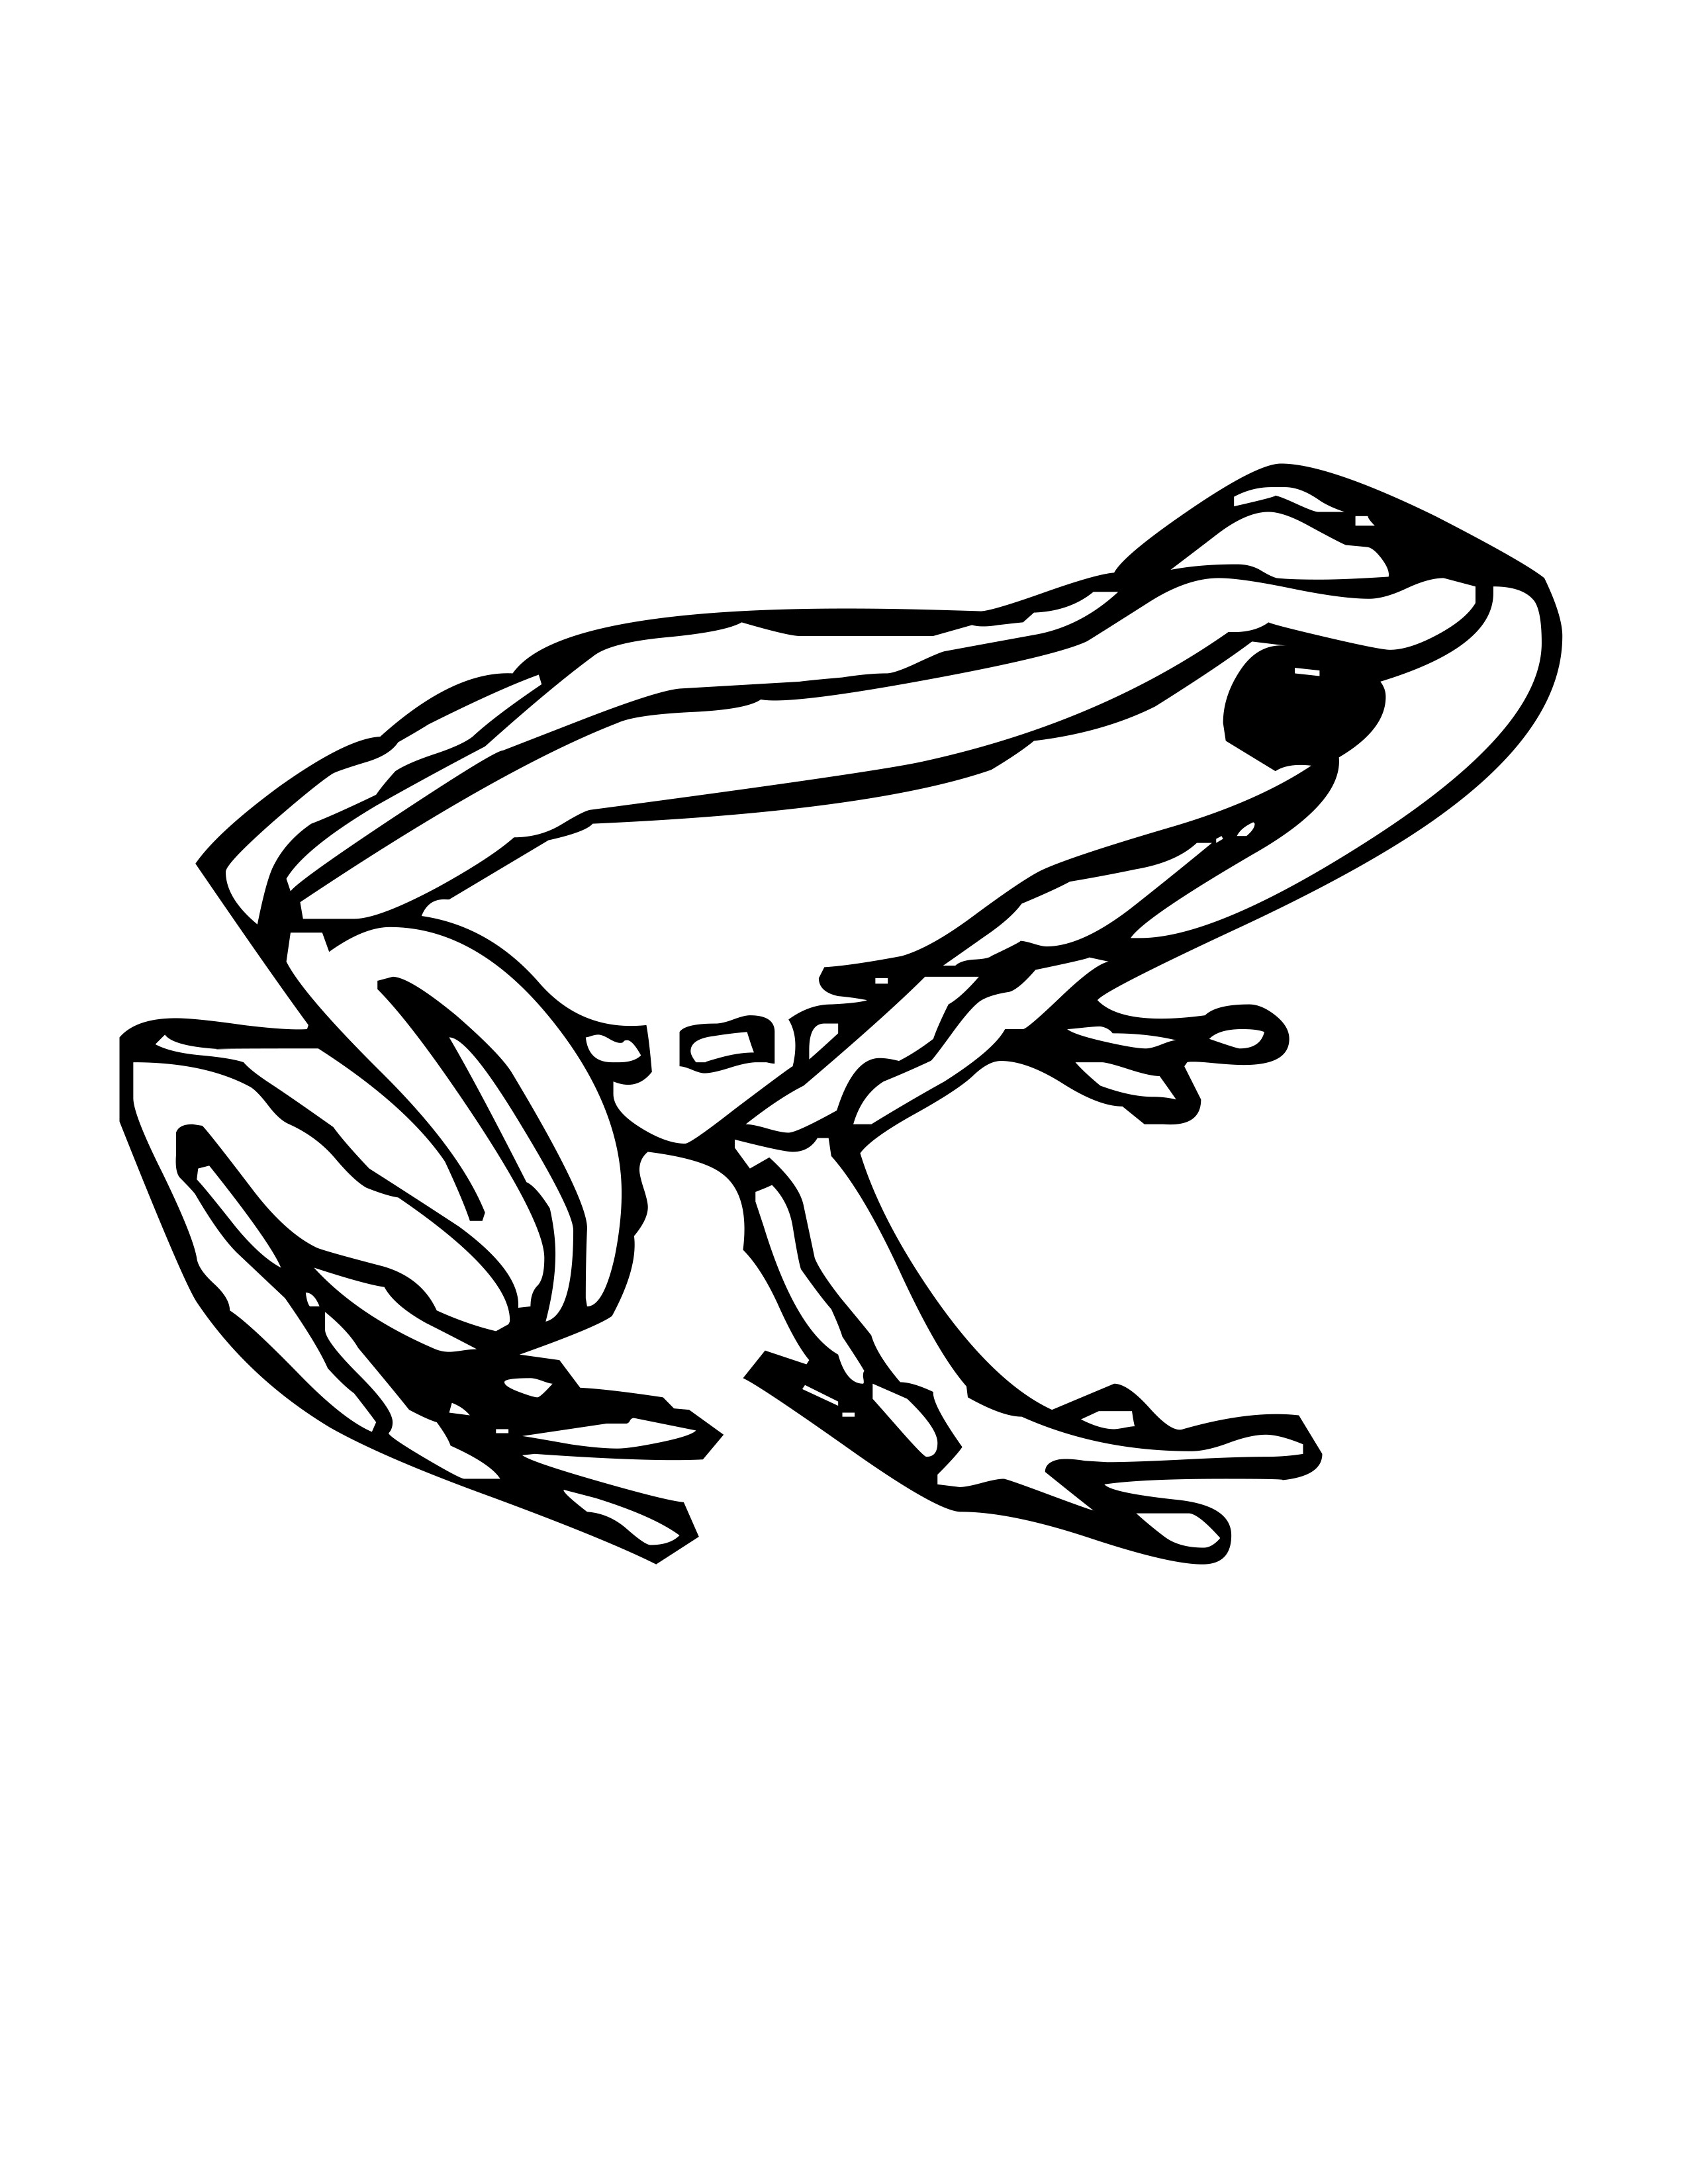 Rainforest frog coloring pages